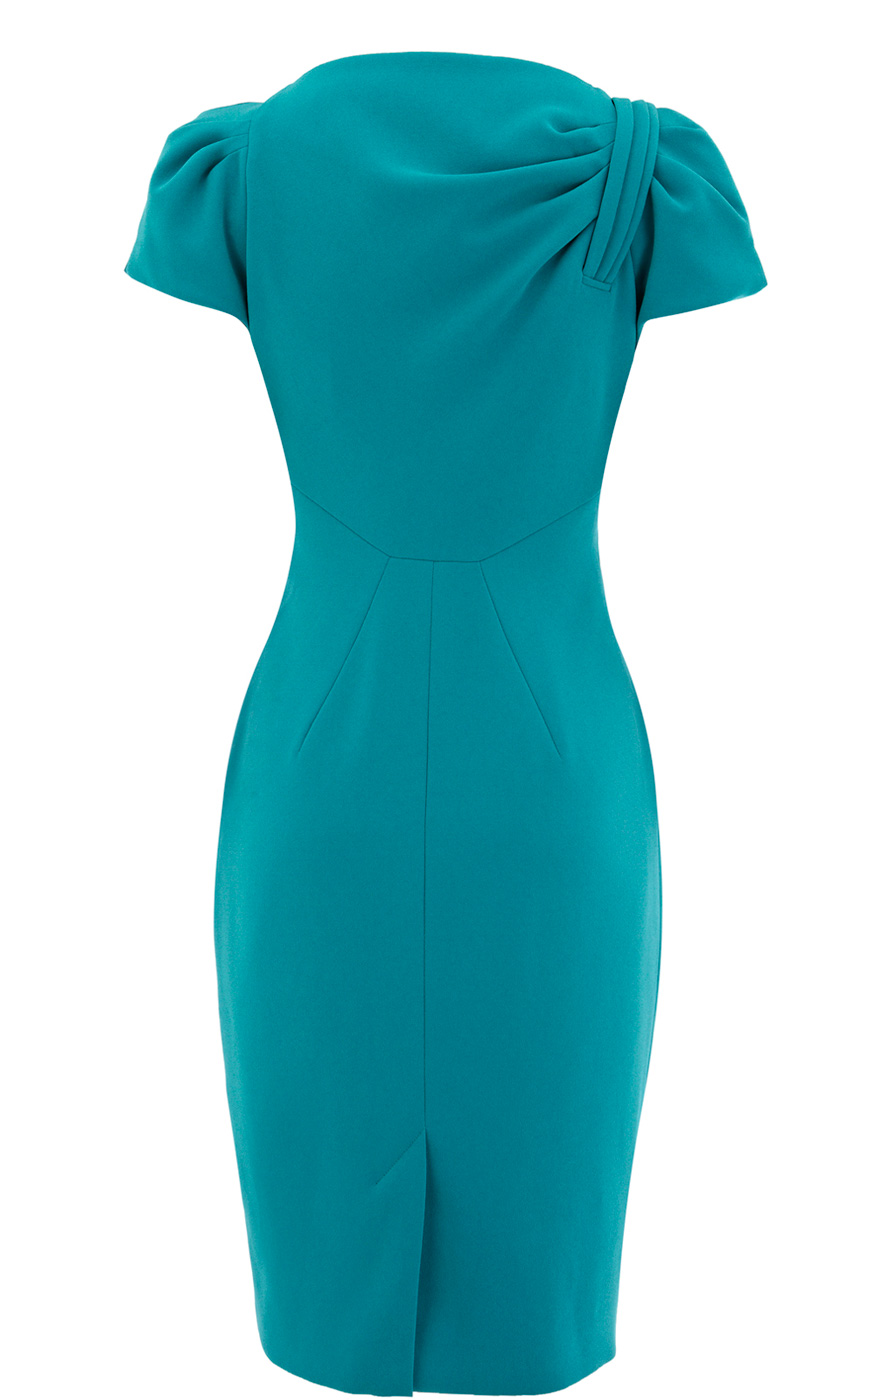 karen millen turquoise tailored crepe dress product 4 3544029 313536117